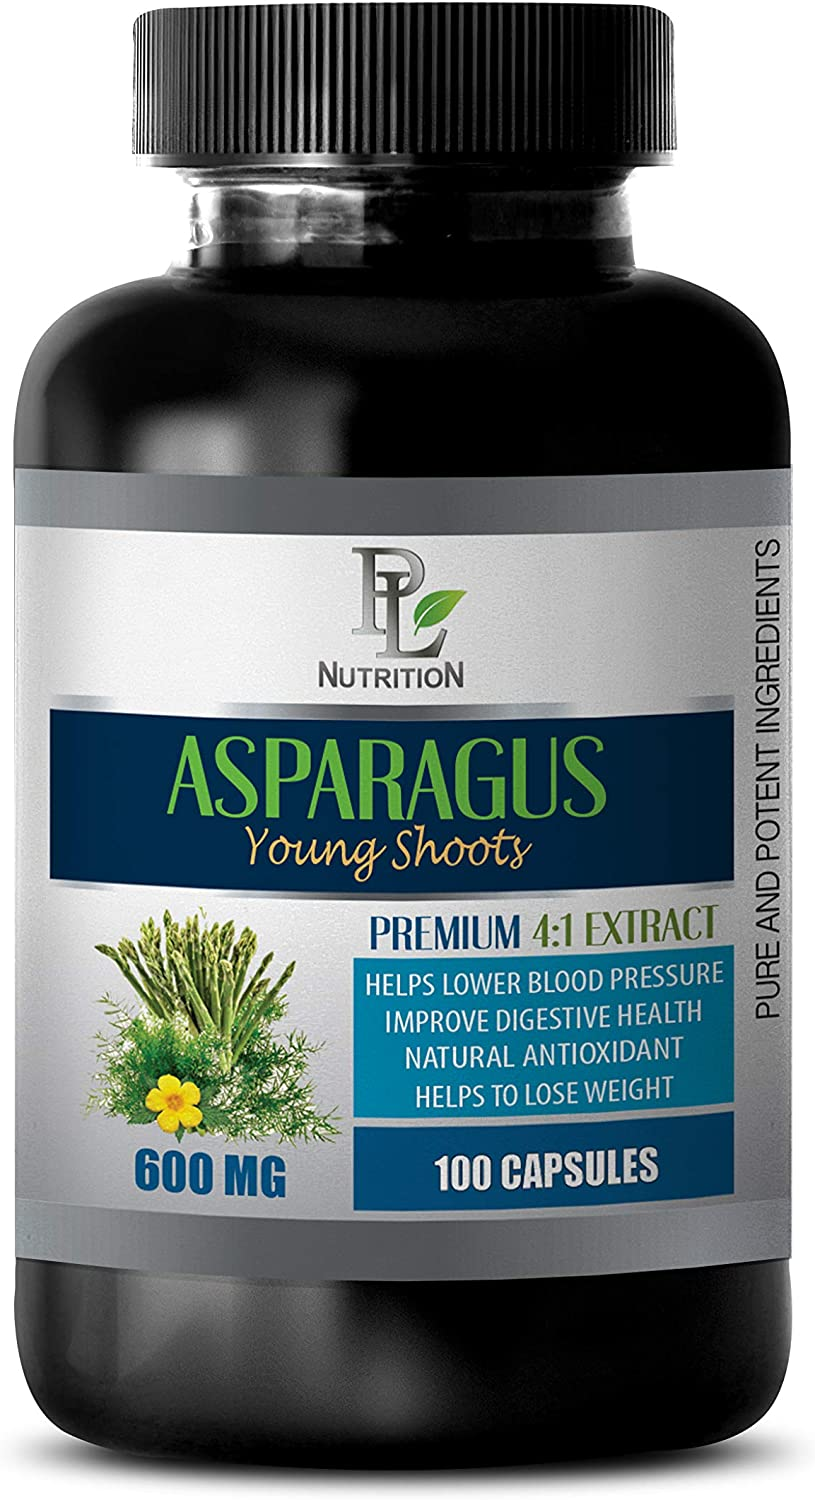 Diuretic and Anti-inflammatory - Asparagus Young Shoots Extract 600MG - Premium 4:1 Extract - Asparagus Vitamins - 1 Bottle 100 Capsules